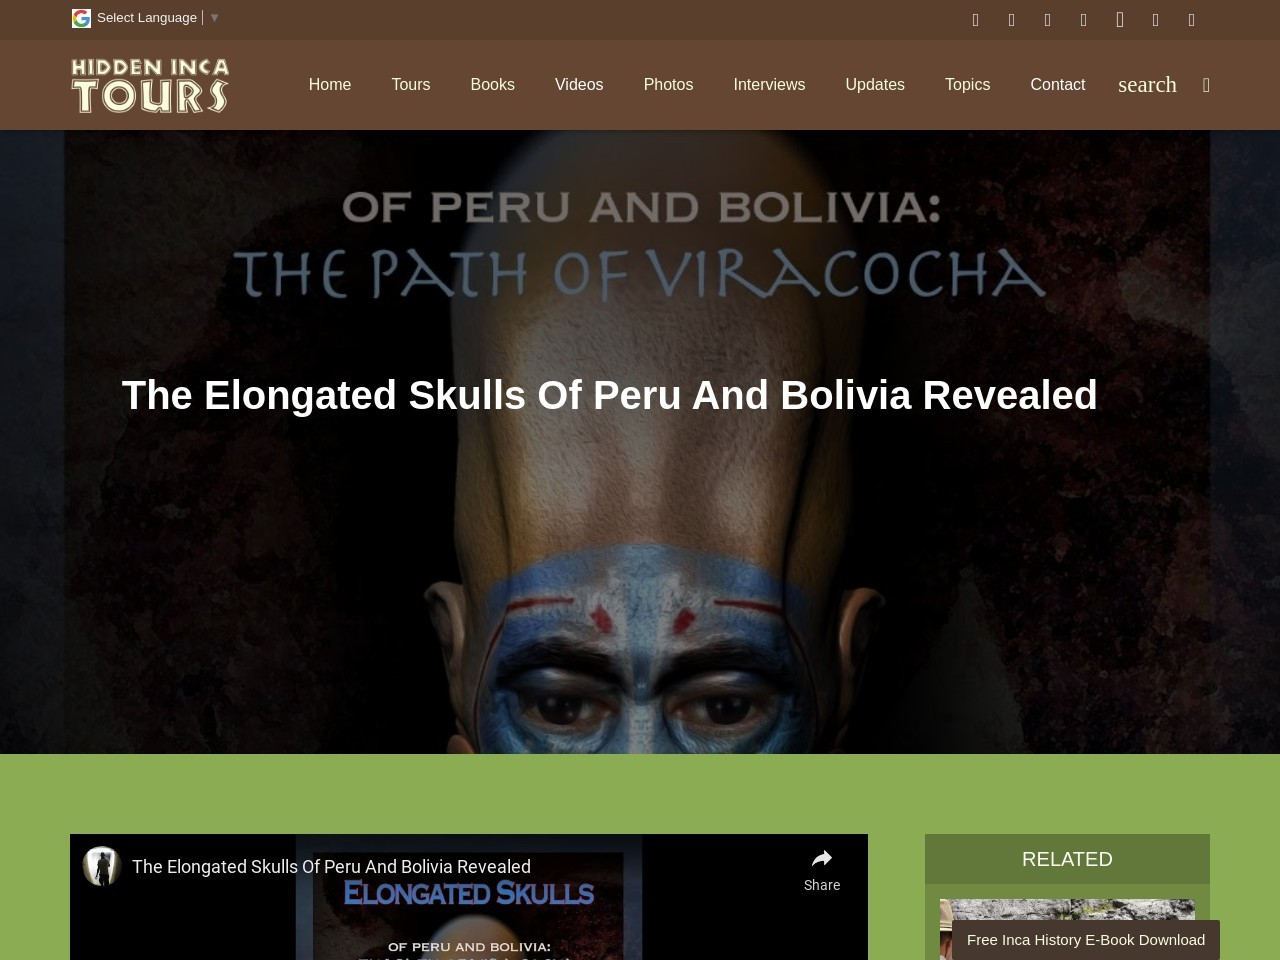 The Elongated Skulls Of Peru And Bolivia Revealed